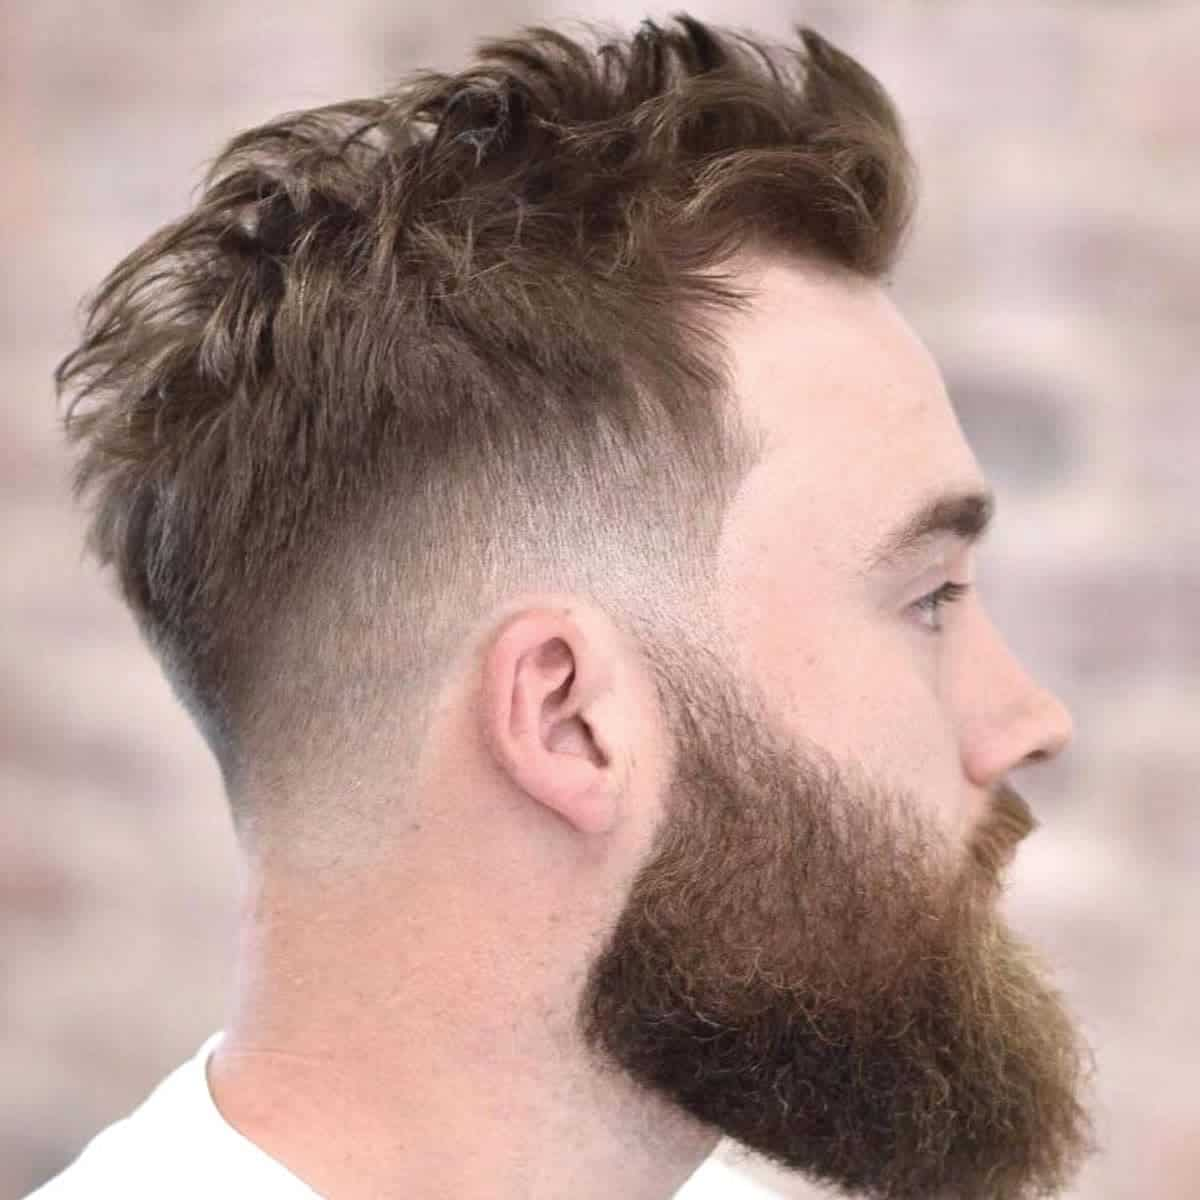 Person with a mid-fade haircut.